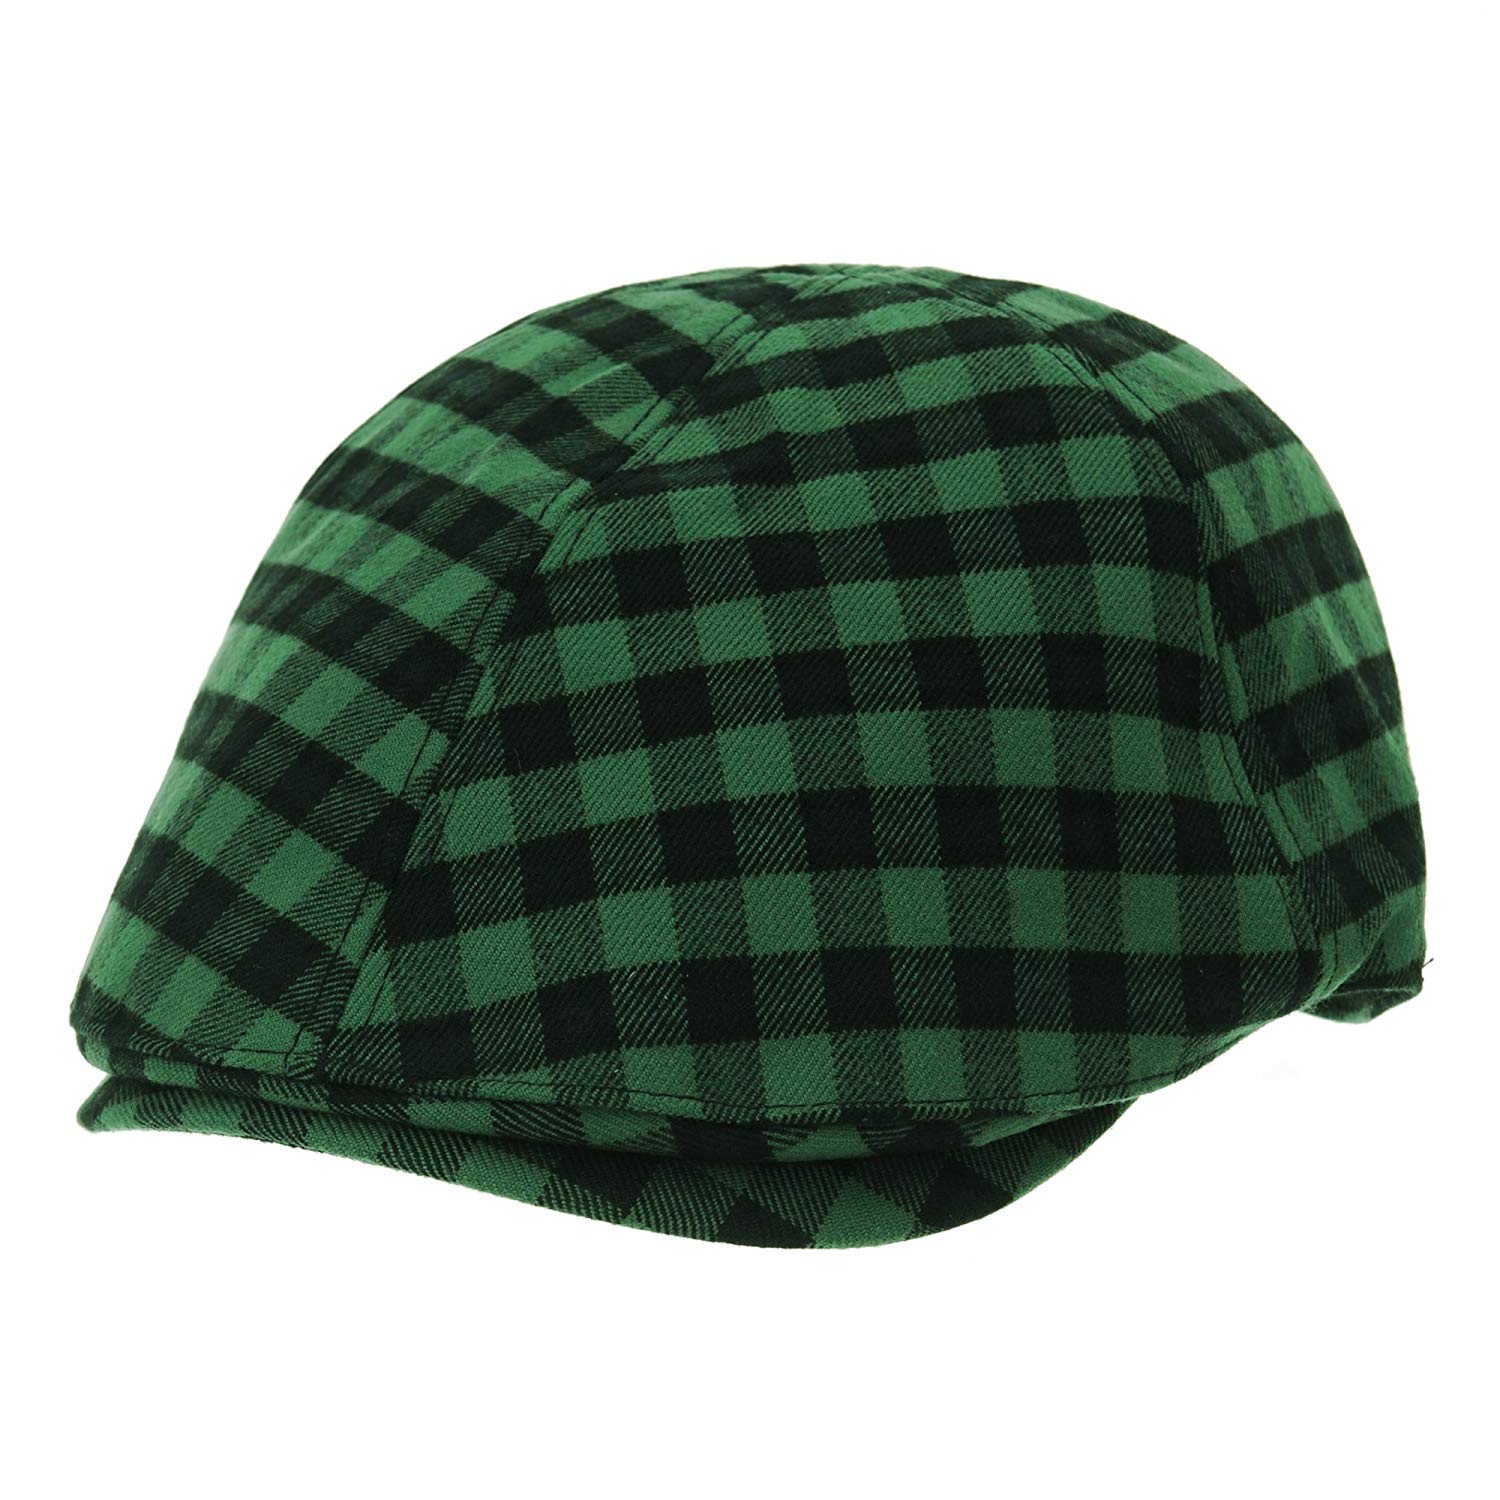 6c9caffa25b4e Get Quotations · WITHMOONS Mens Flat Cap Gingham Checks Plaid Ivy Hat SL3841